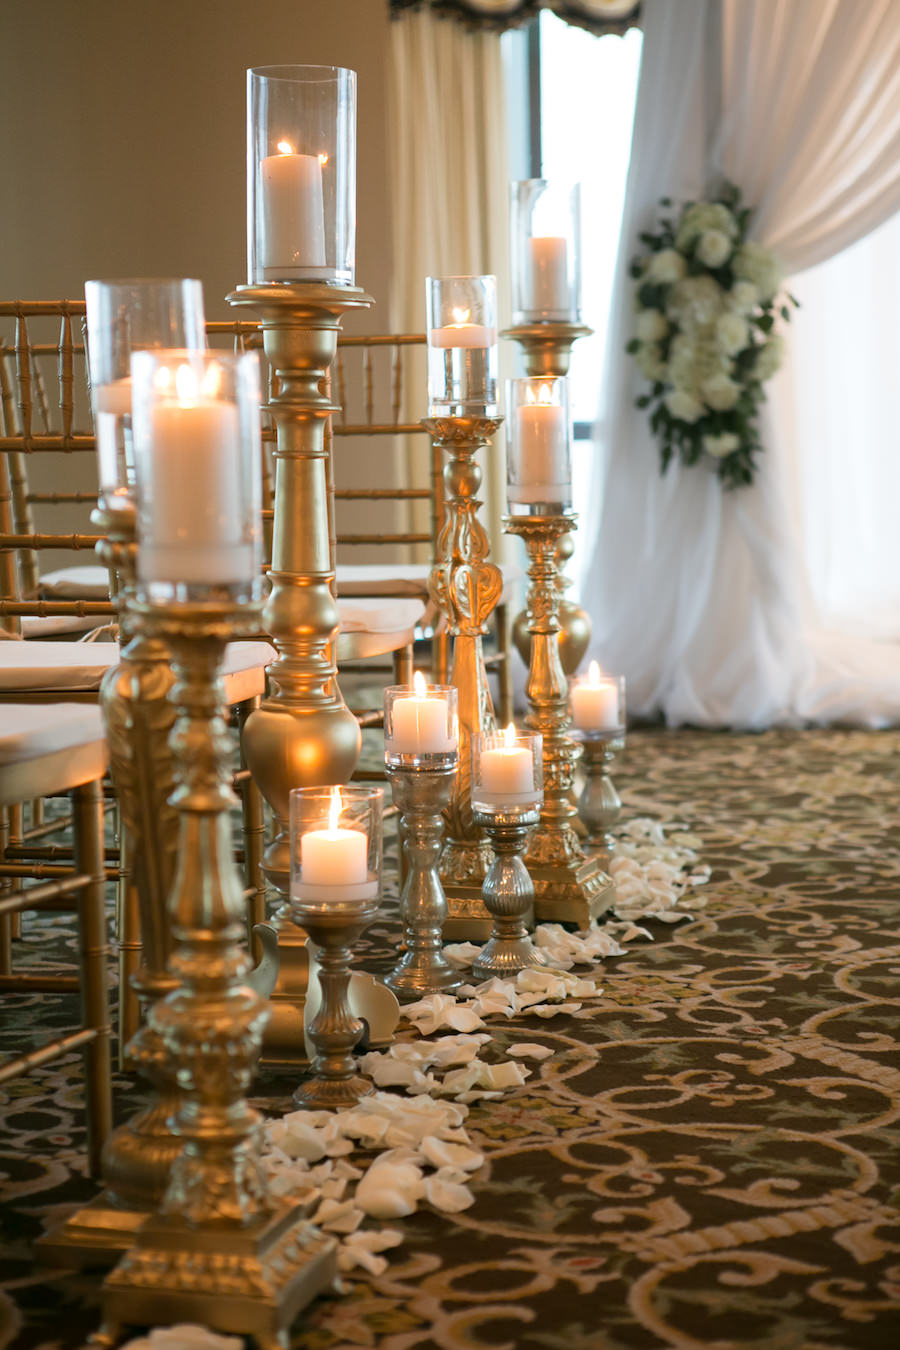 White and Gold Wedding Ceremony Decor and Inspiration with Gold Chiavari Chairs and Candles with White Rose Petals   Modern Elegant Downtown Tampa Wedding Venue The Tampa Club   Tampa Bay Florist Northside Florist   Rentals A Chair Affair